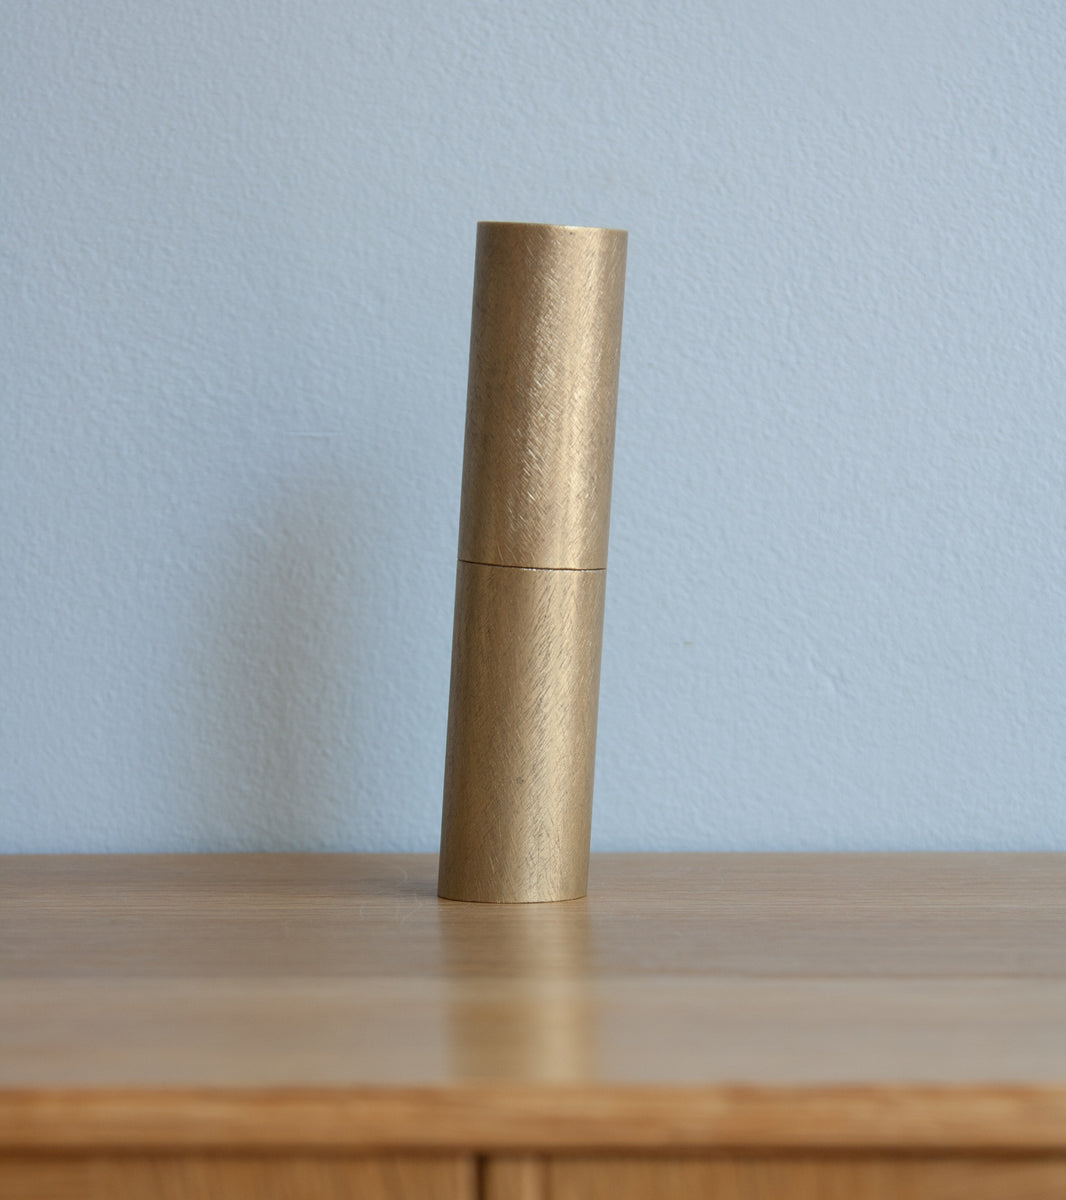 Italic Mill - Filed Brass Michael Anastassiades & Carl Auböck  - Image 12